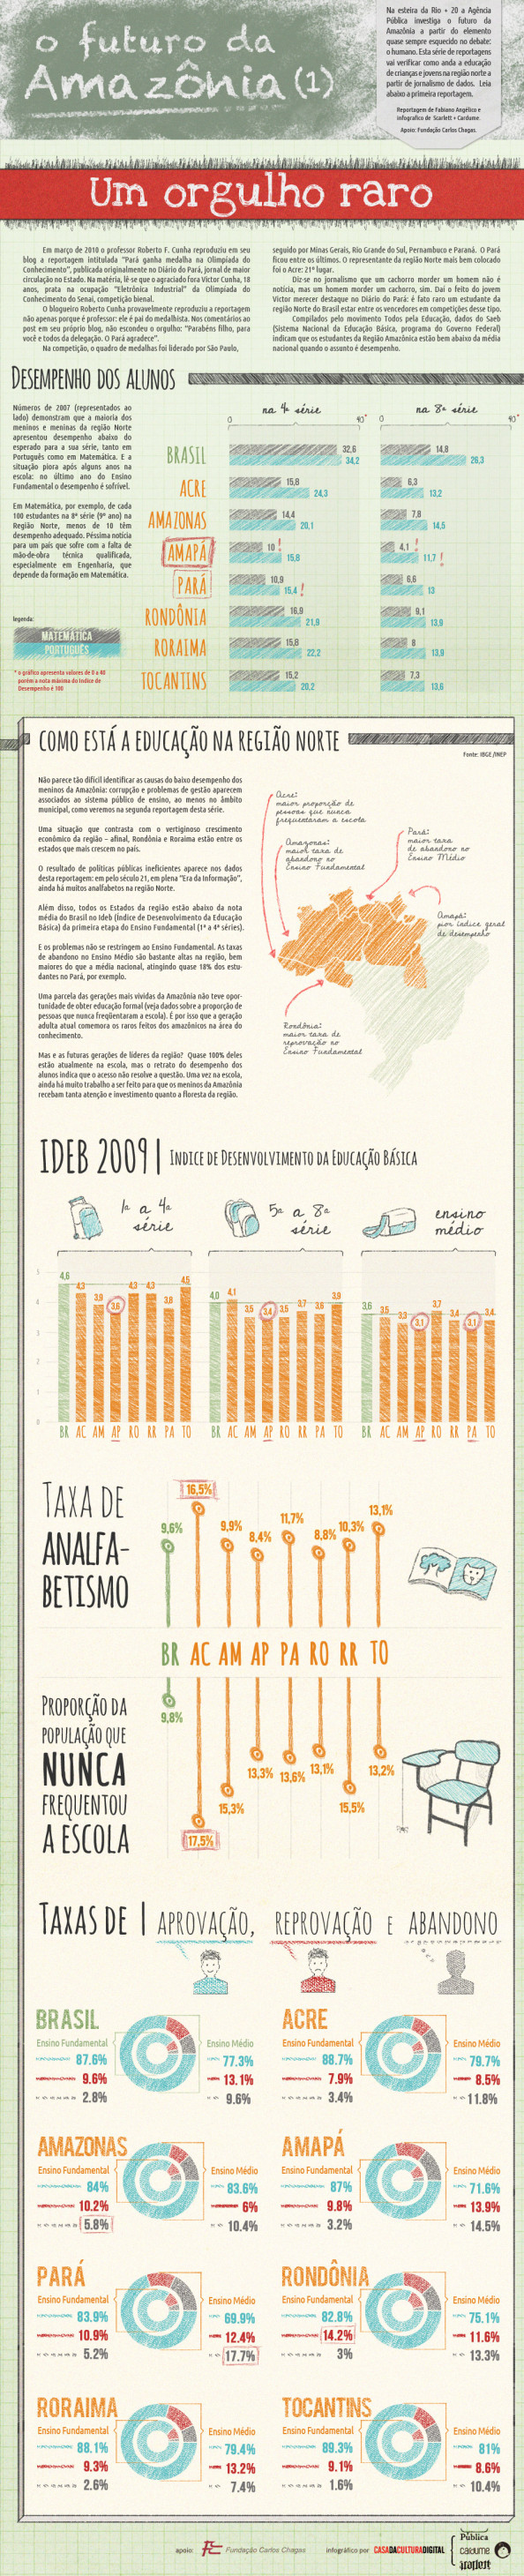 Amazônia Legal 1/3 Infographic